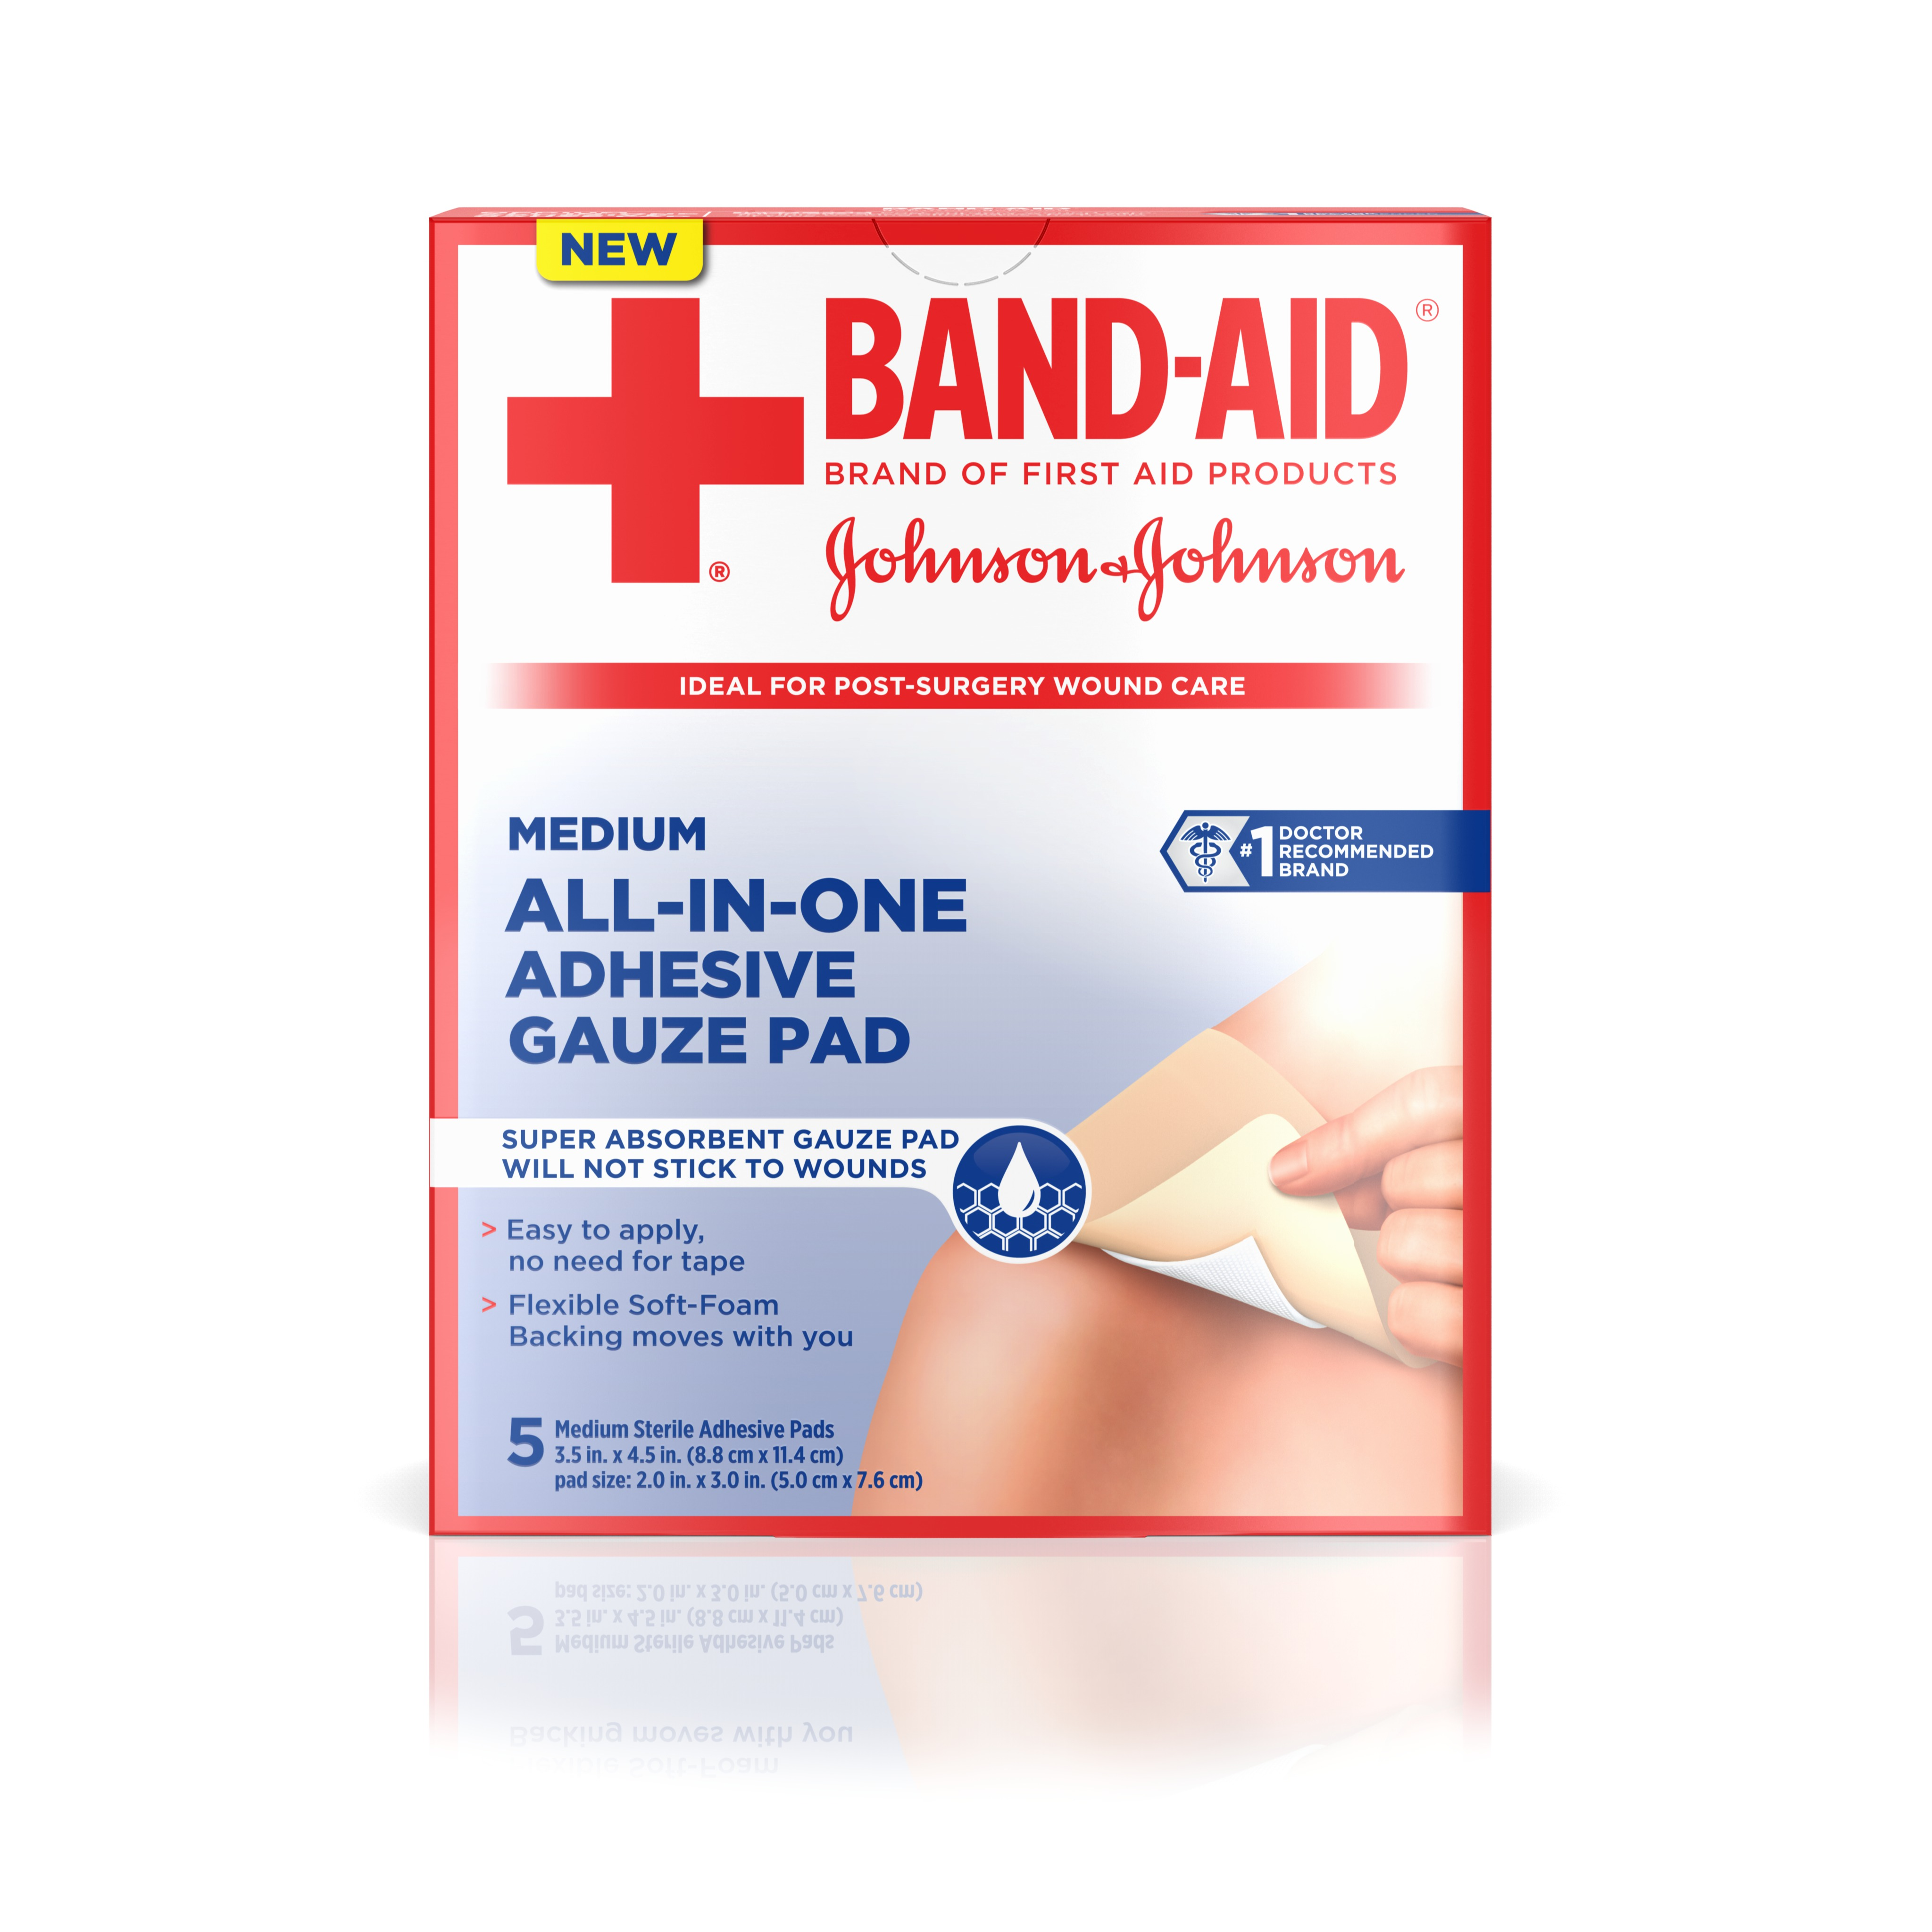 Band-Aid Brand of First Aid Products All-in-One Adhesive Gauze Pad Helps to Keep Wounds Clean, Medium